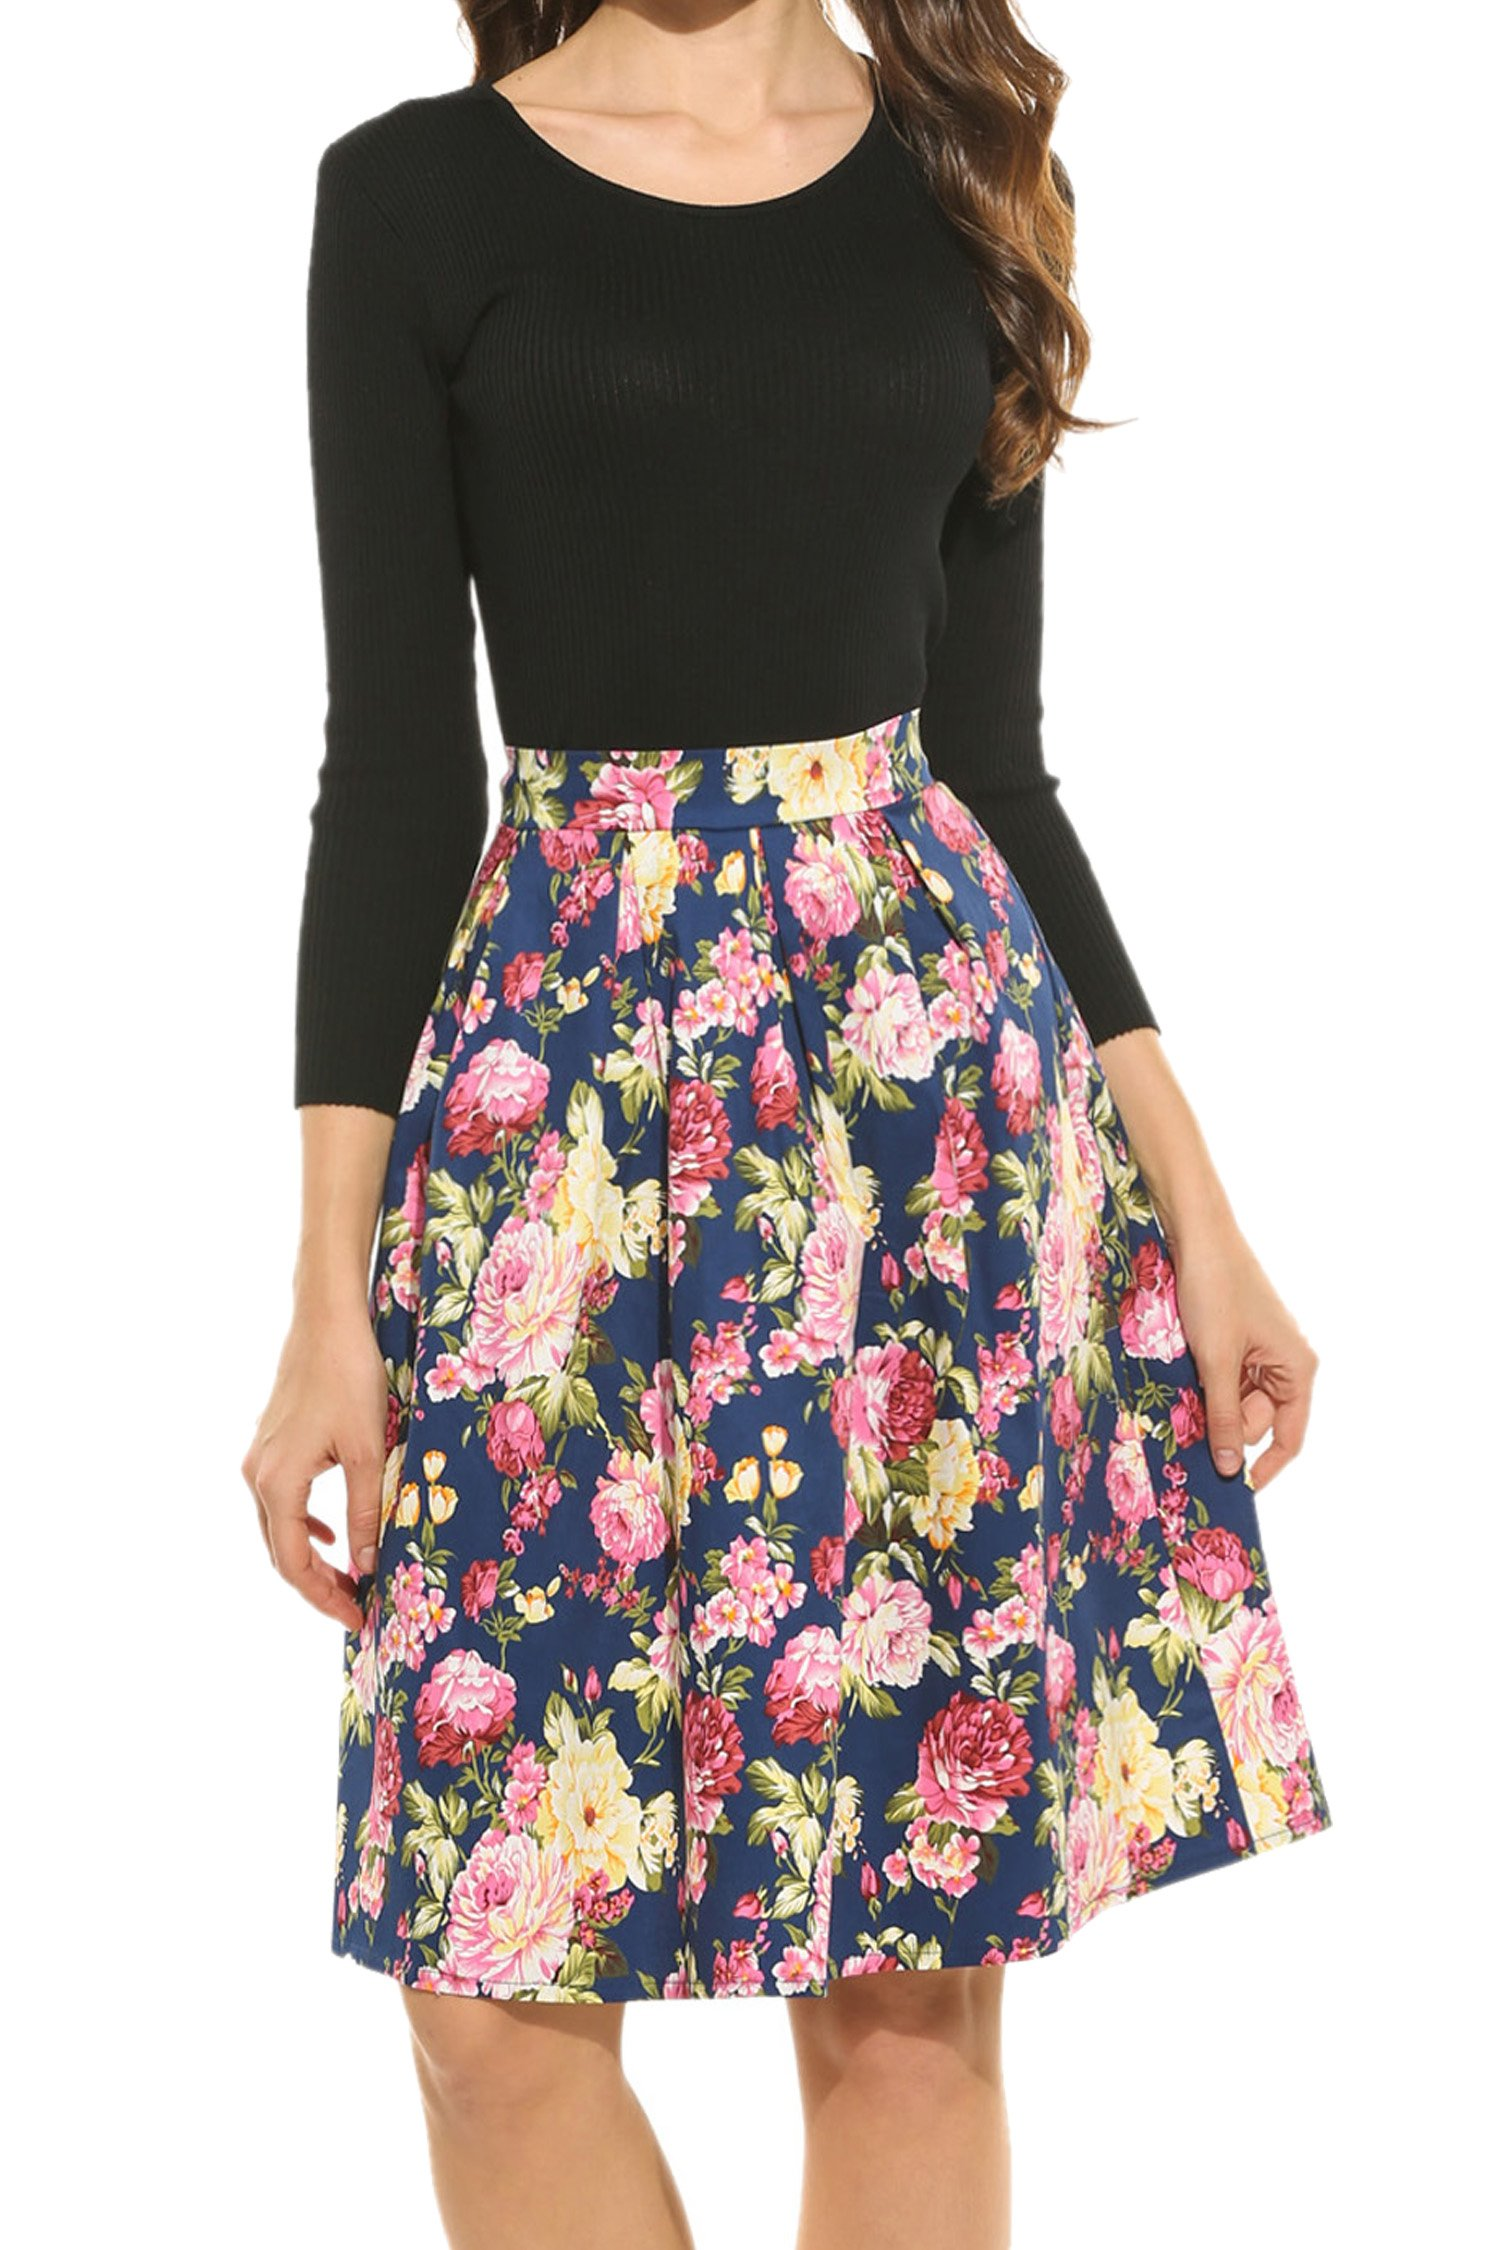 Meaneor Women's High Waisted A line Street Skirt Skater Pleated Full Midi Skirt by Meaneor (Image #3)